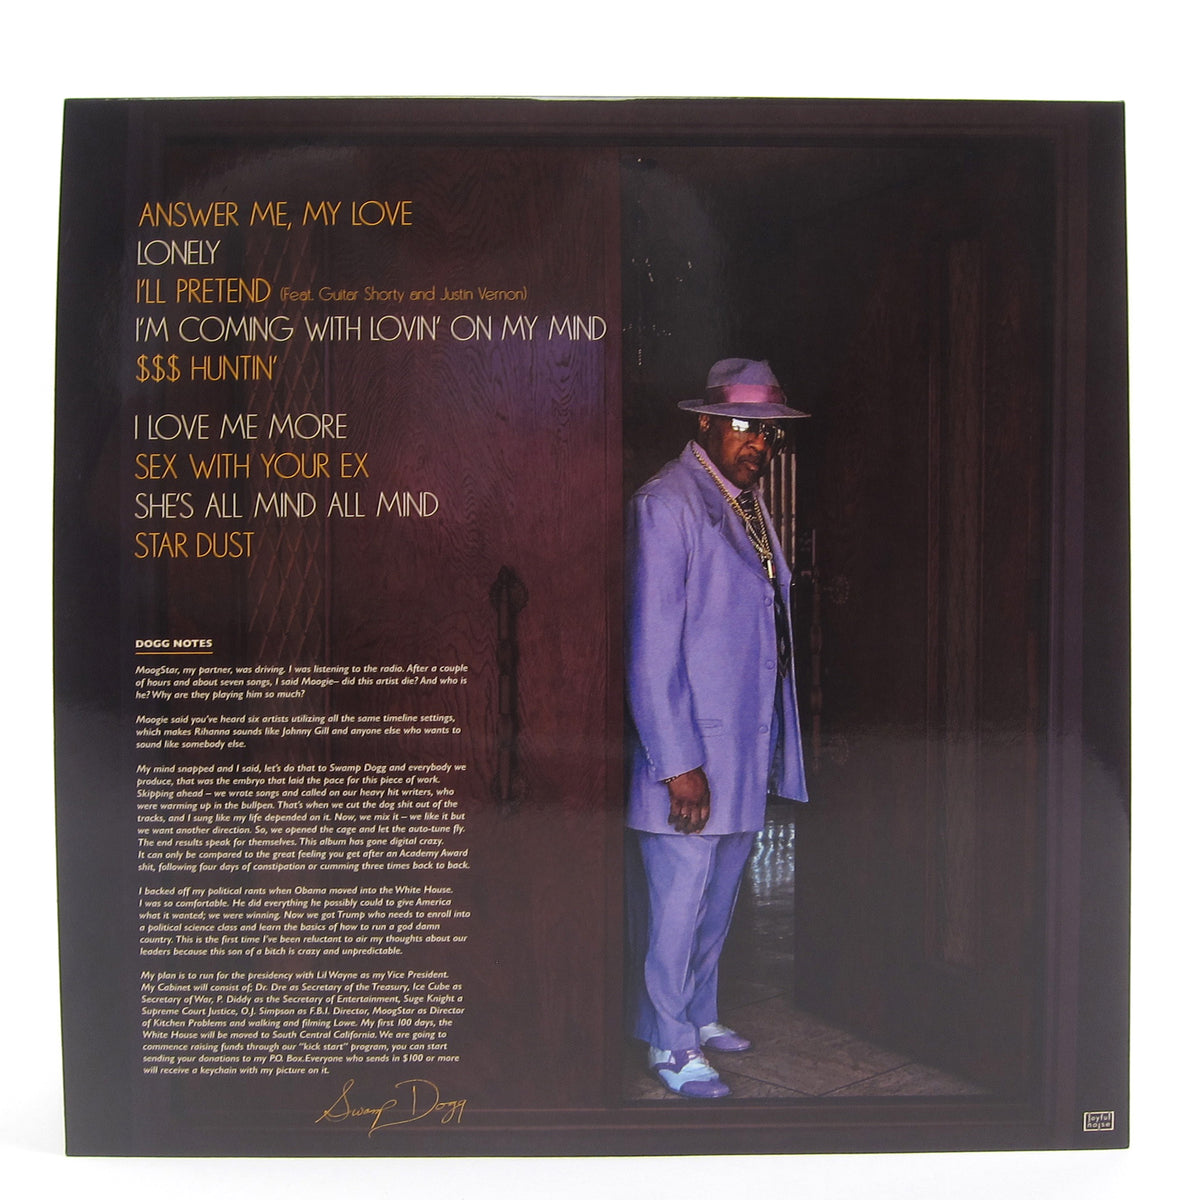 Swamp Dogg: Love, Loss, And Auto-Tune (Indie Exclusive Colored Vinyl) Vinyl LP